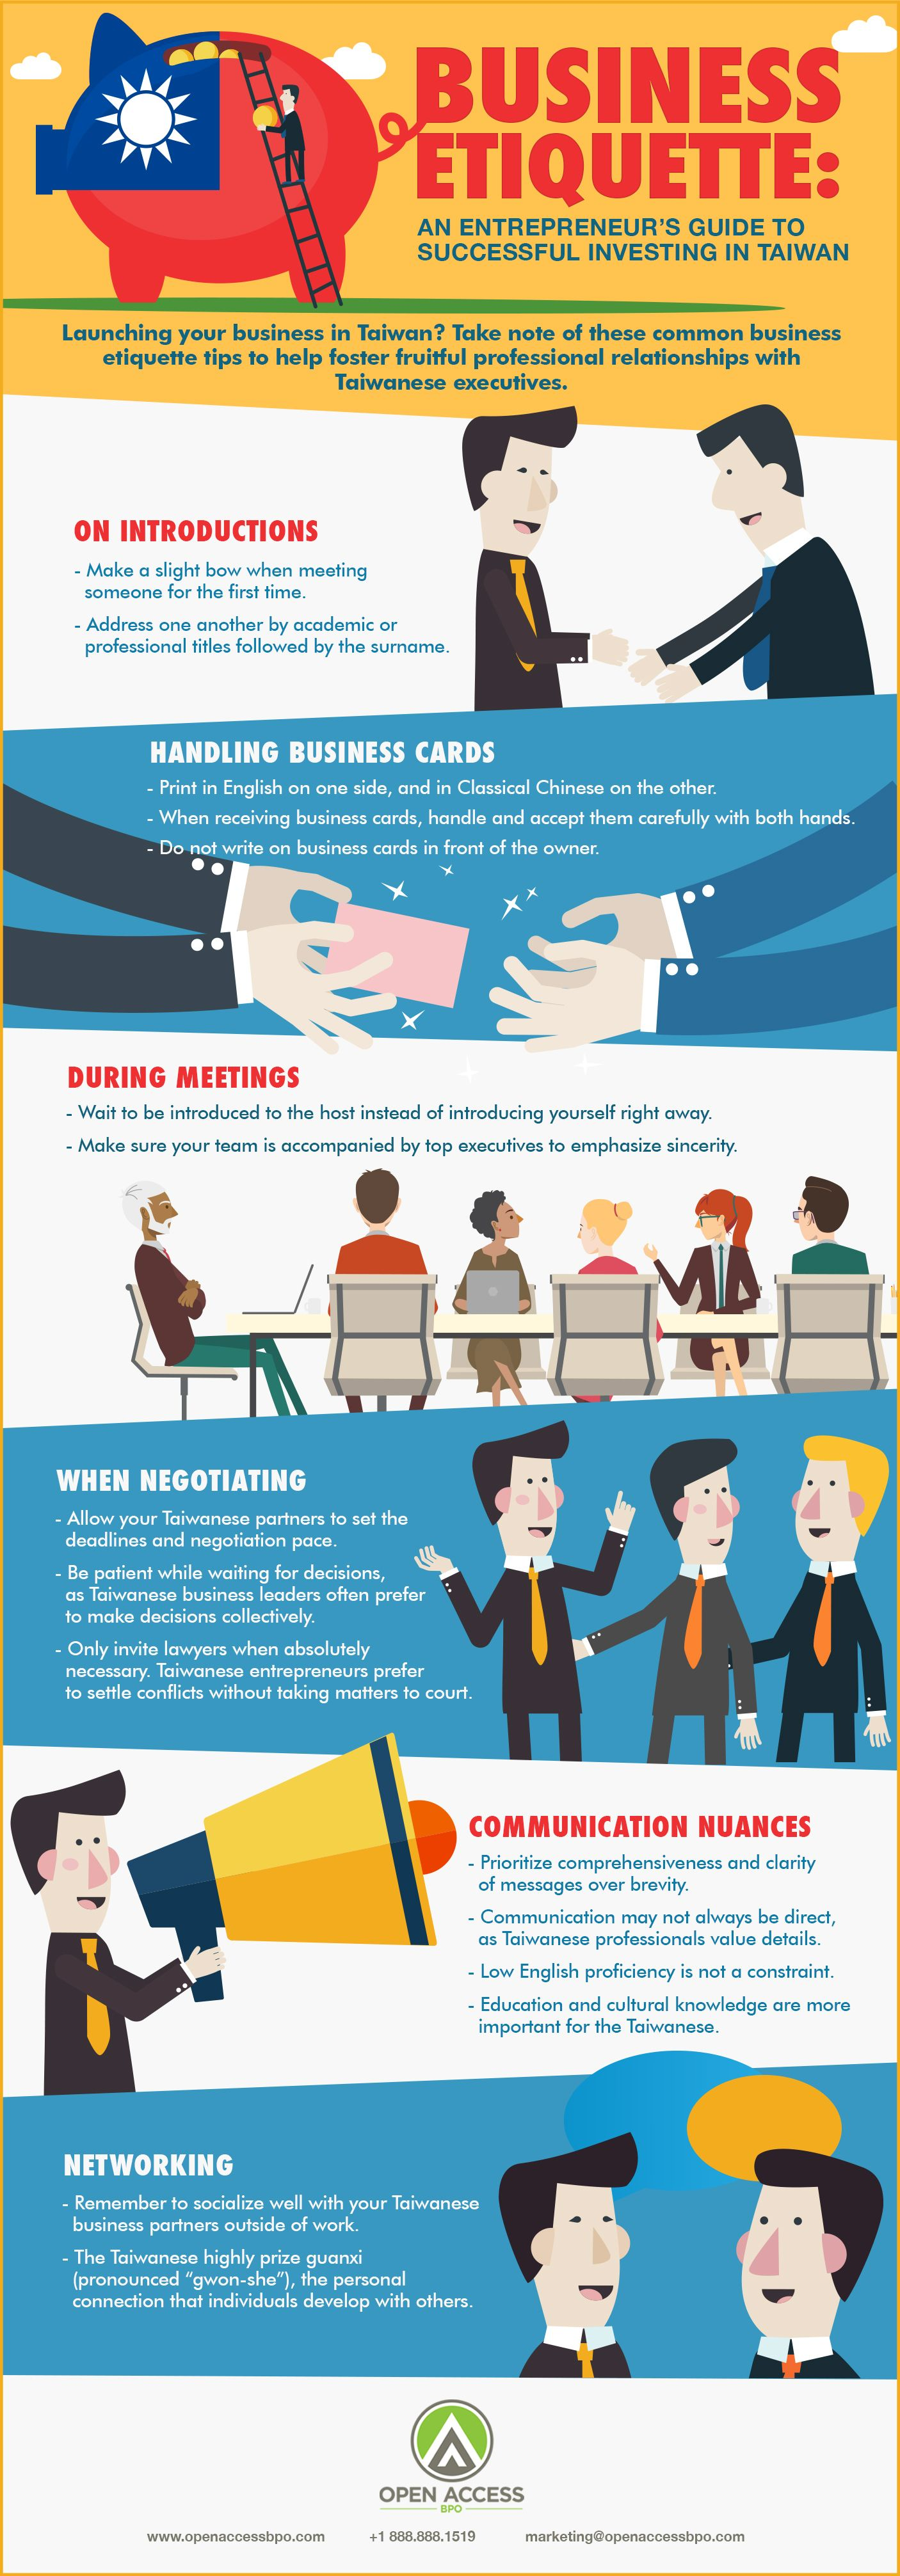 Business Etiquette: An entrepreneur's guide to successful investing in Taiwan #infographic